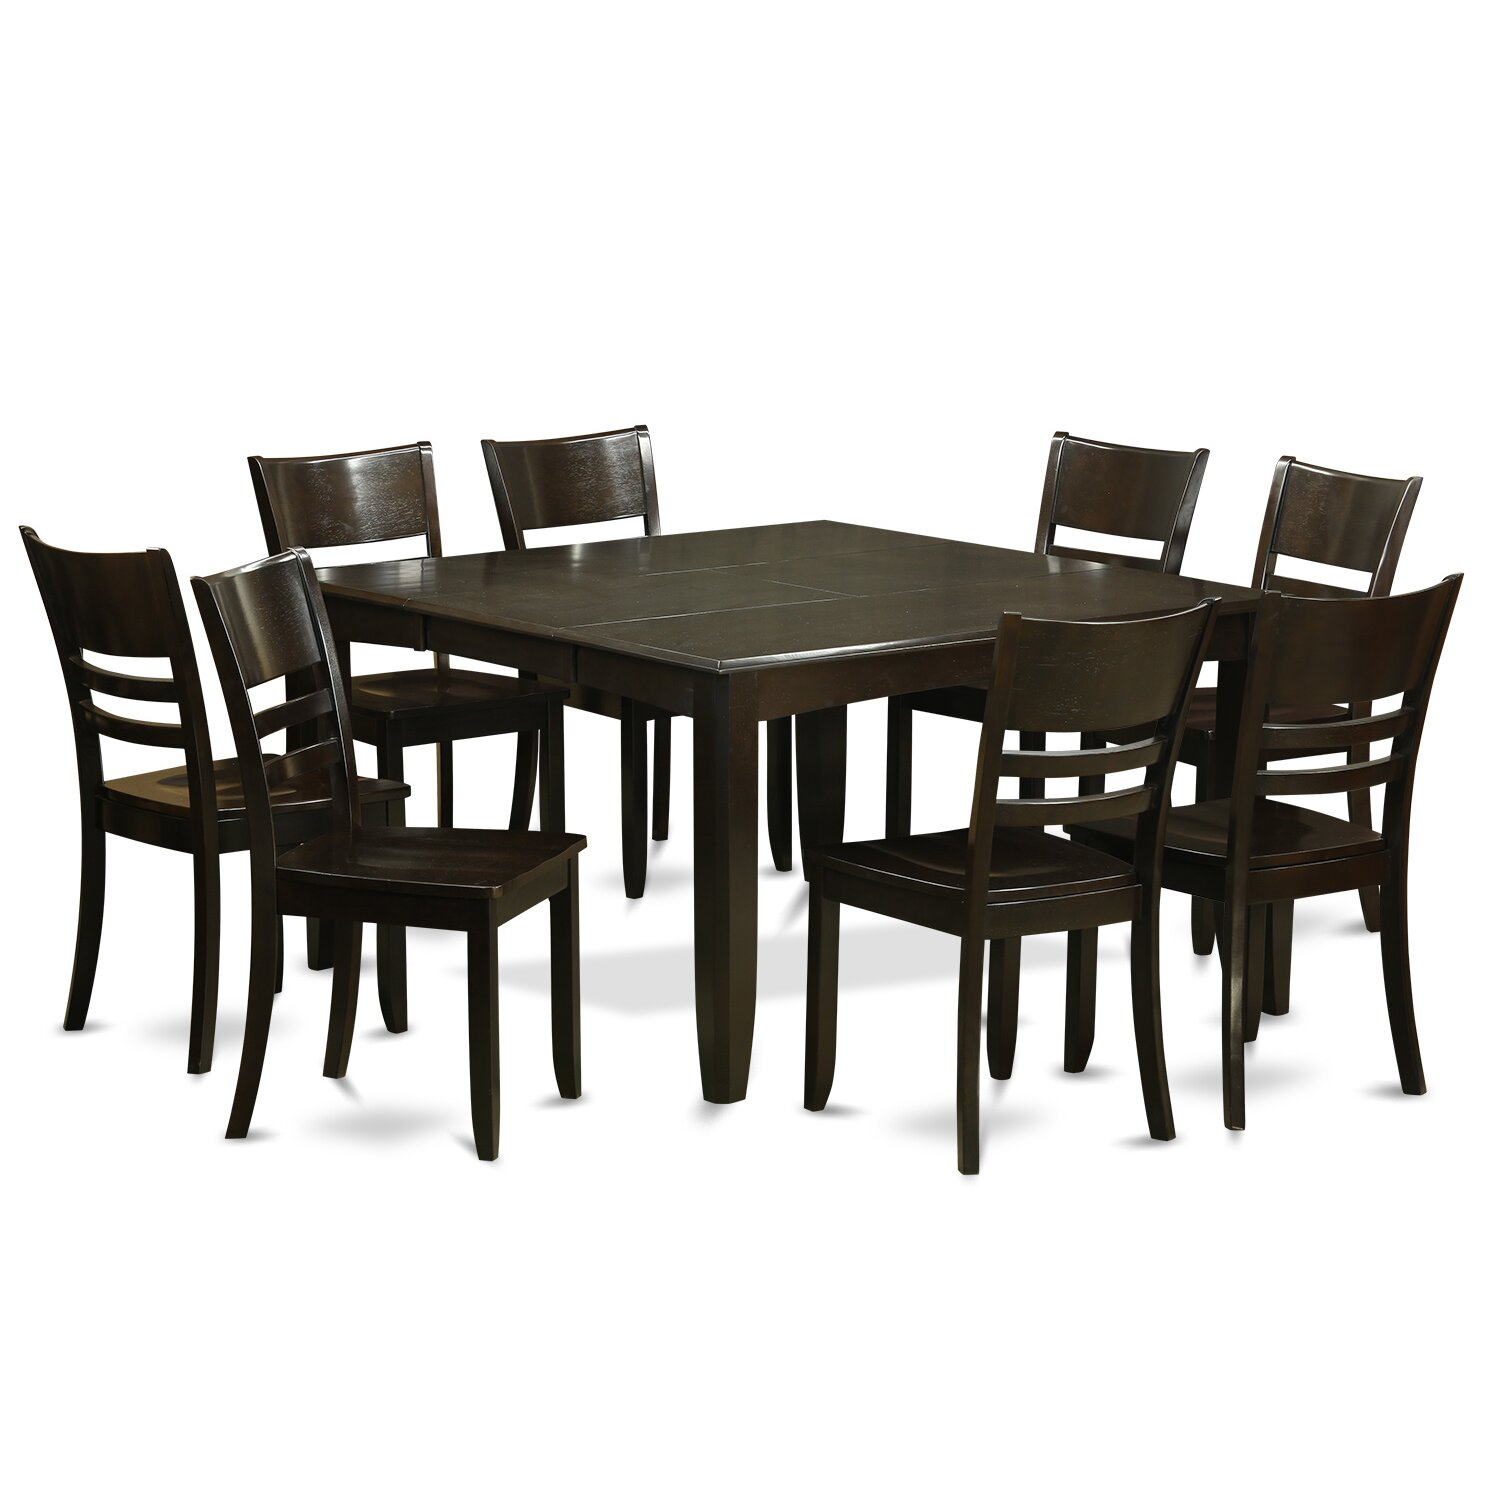 9 PC Dining Room Table Set Kitchen Table with Leaf and 8 Kitchen Chairs PFLY9 CAP W WOIM